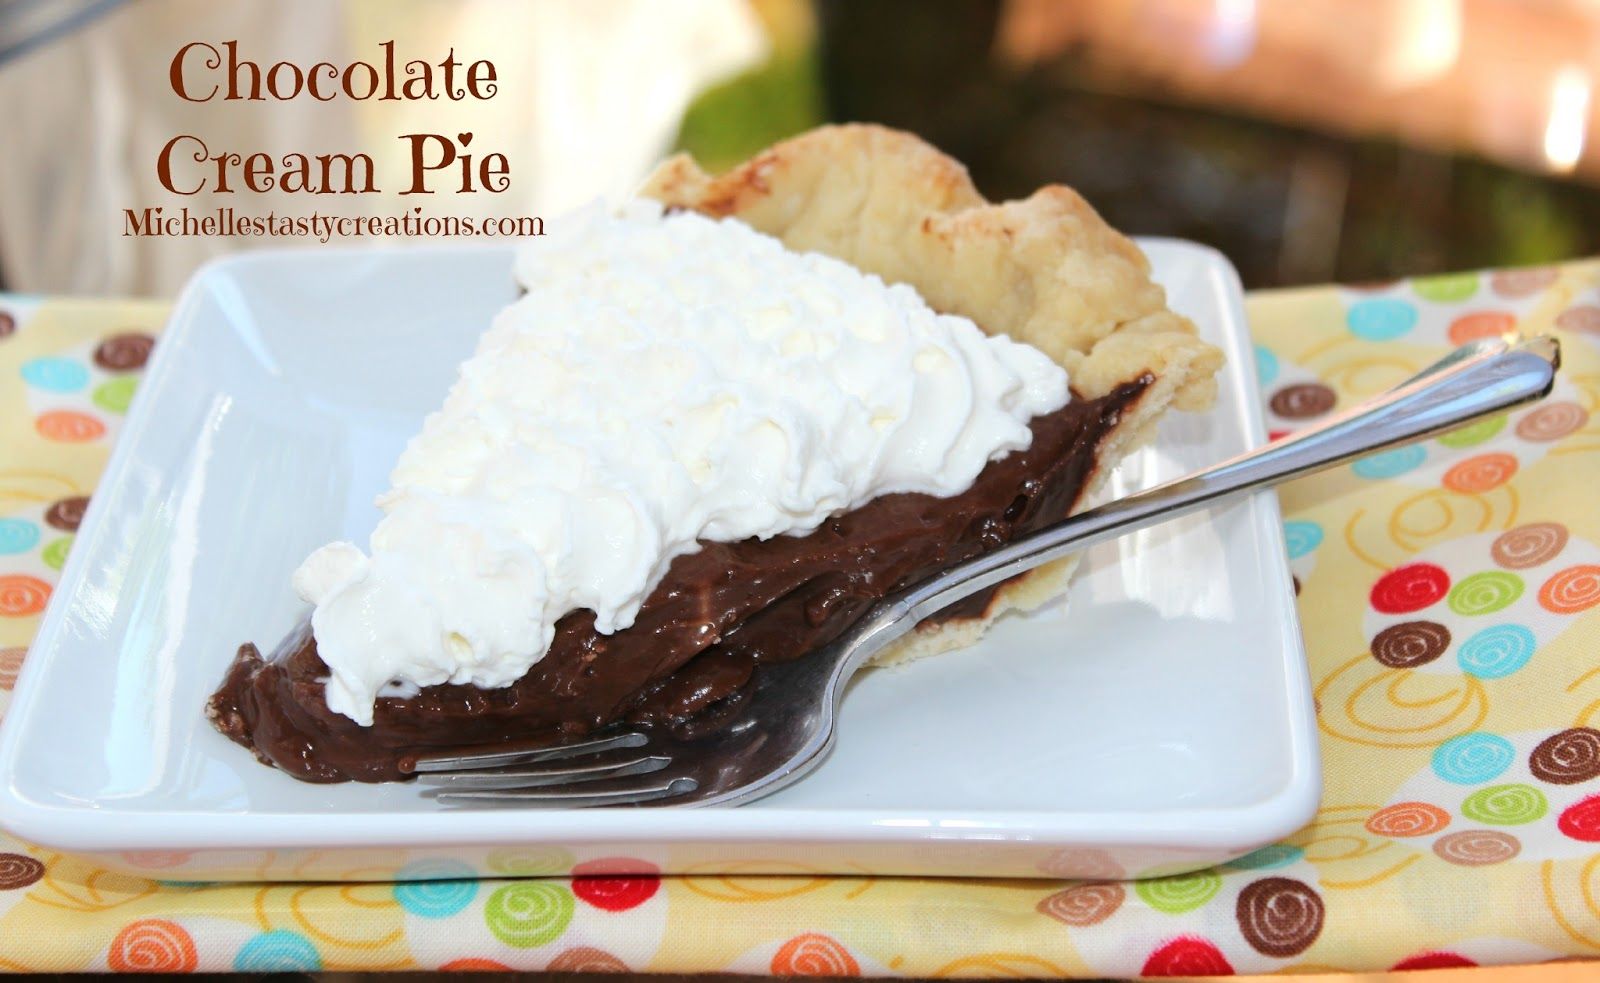 Michelle's Tasty Creations: Chocolate Cream Pie